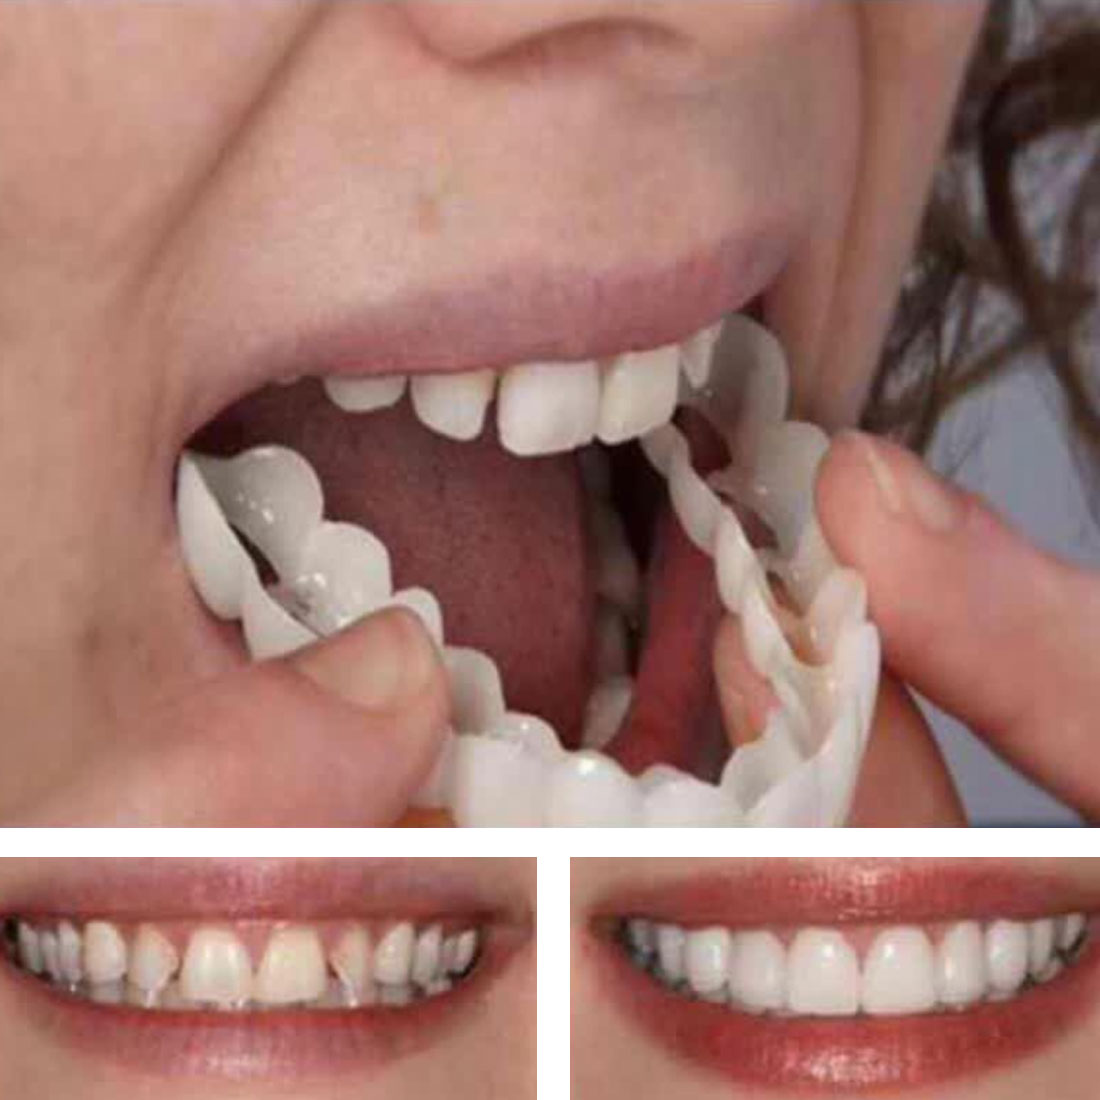 5pcs Temporary Denture Teeth Whitening Fake Tooth Cover Comfort Fit Snap Fake Upper Teeth Cosmetic Temporary Denture Tooth